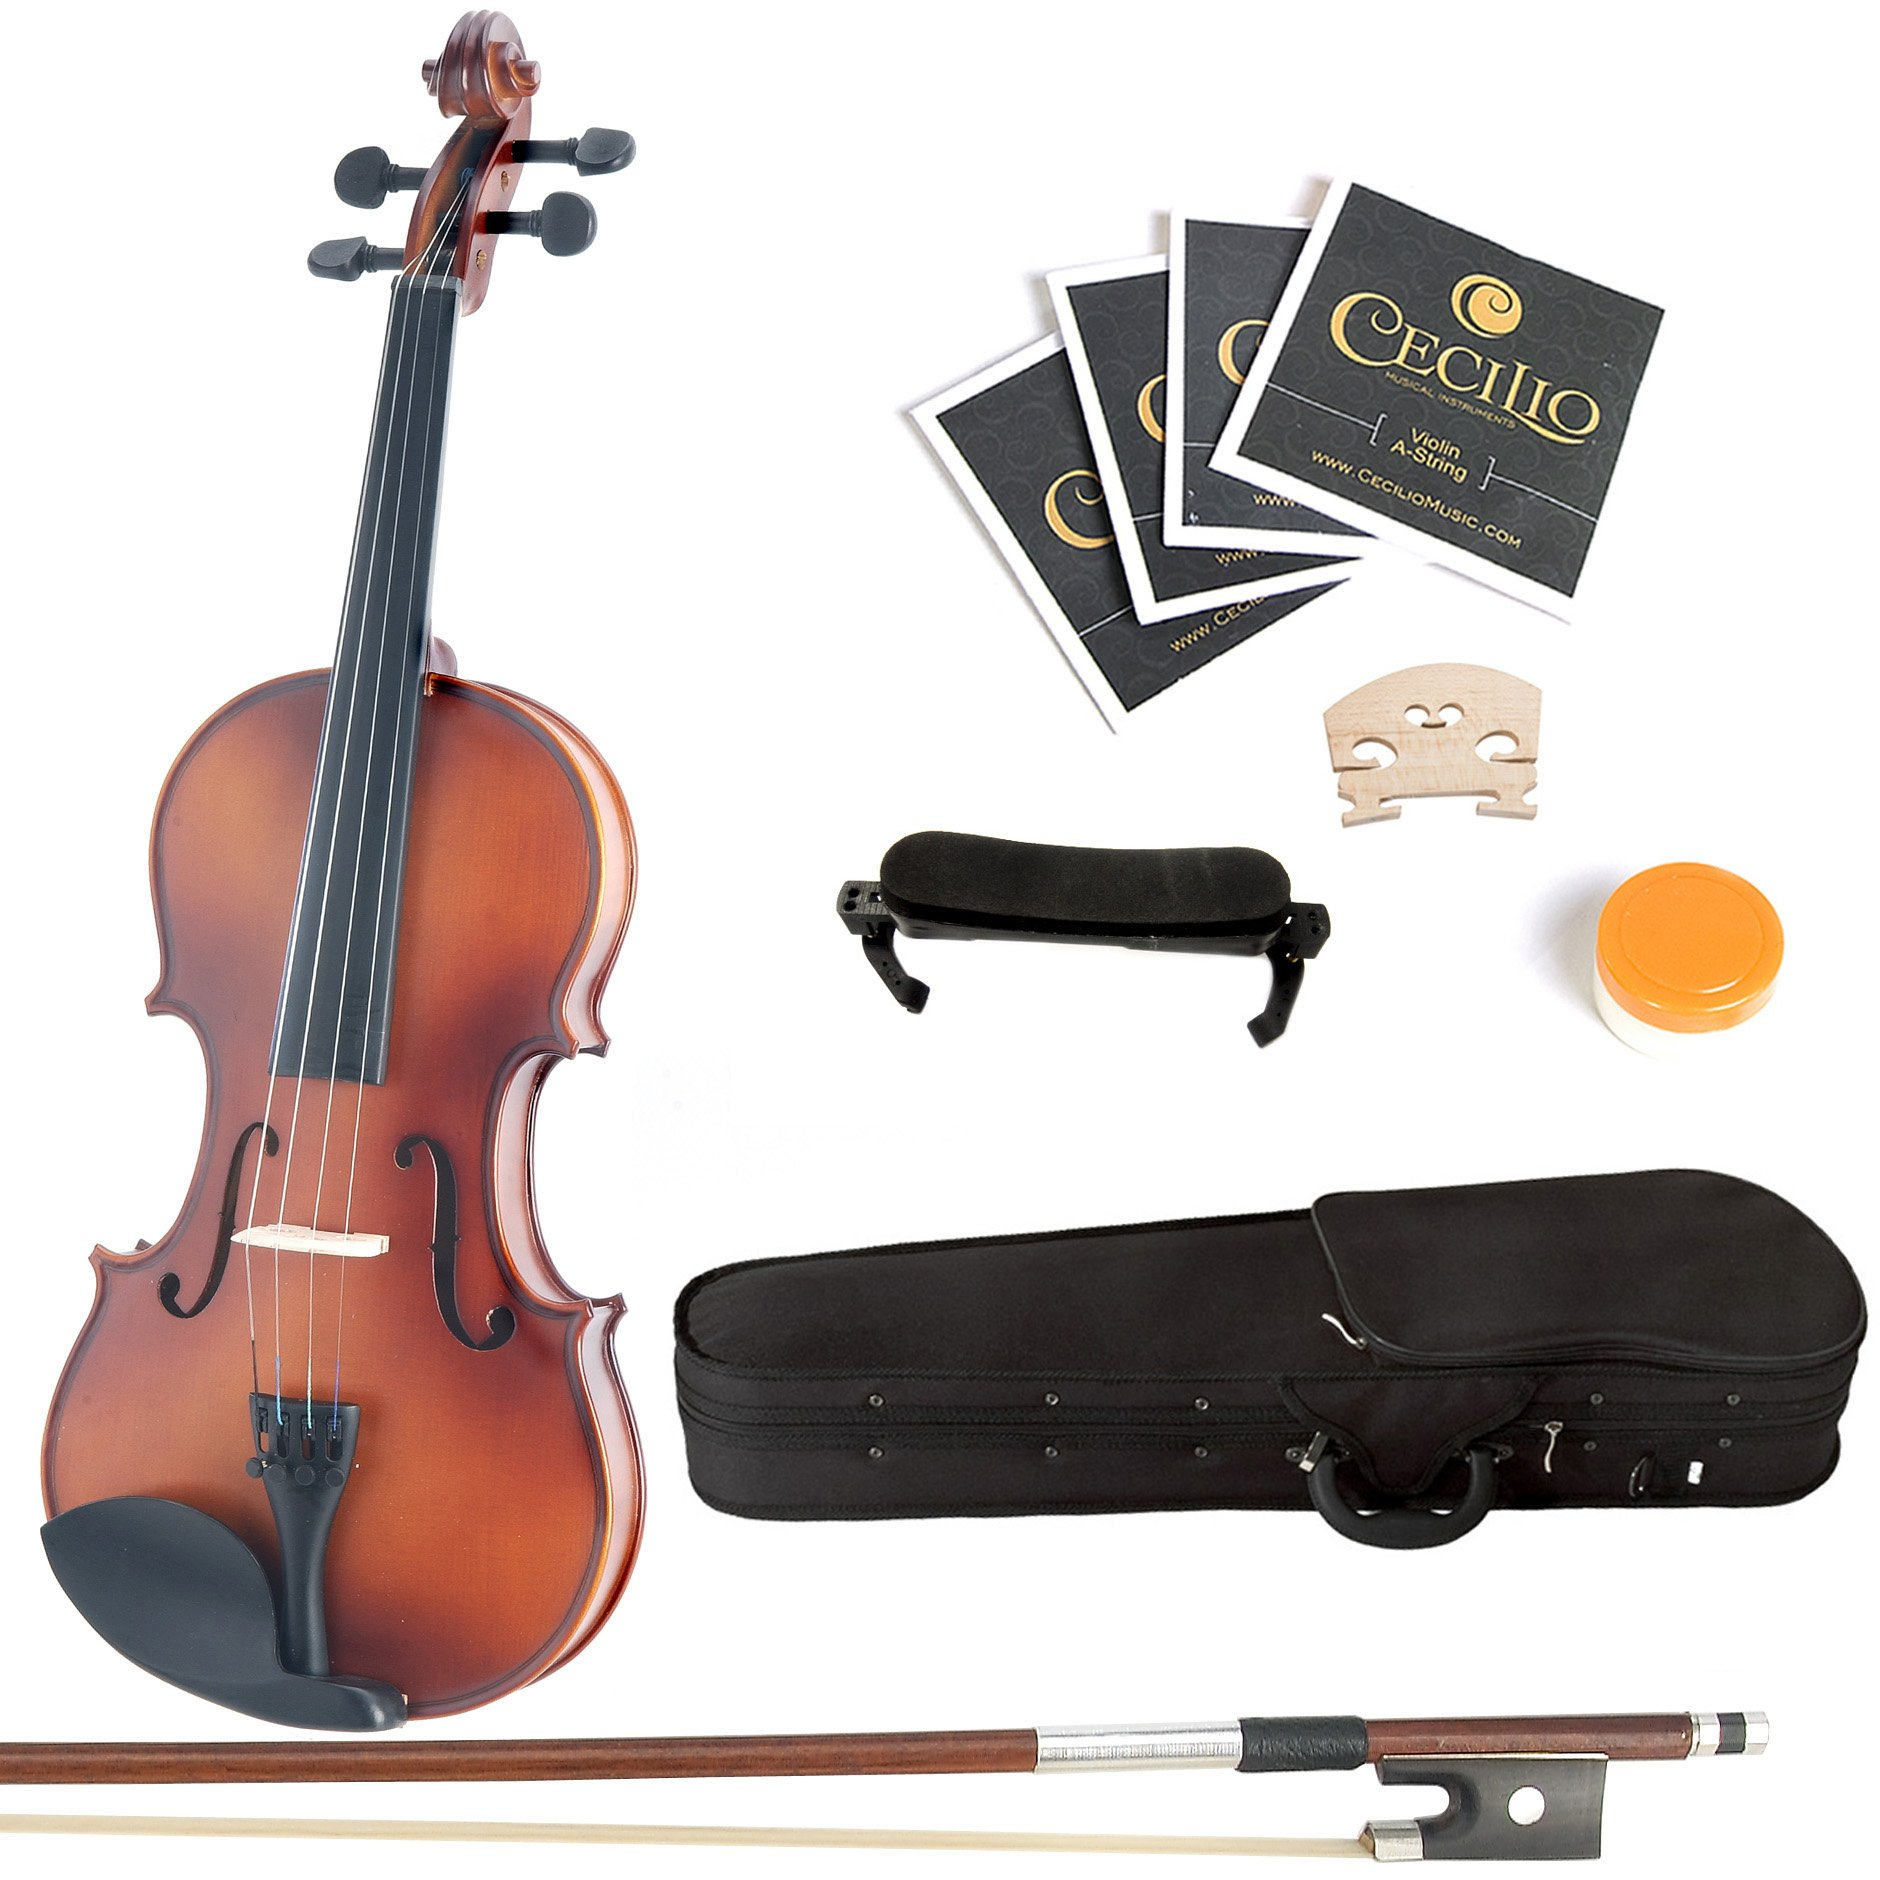 Mendini 4/4 MV300 Solid Wood Satin Antique Violin with Hard Case, Shoulder Rest, Bow, Rosin and Extra Strings (Full Size) by Mendini by Cecilio